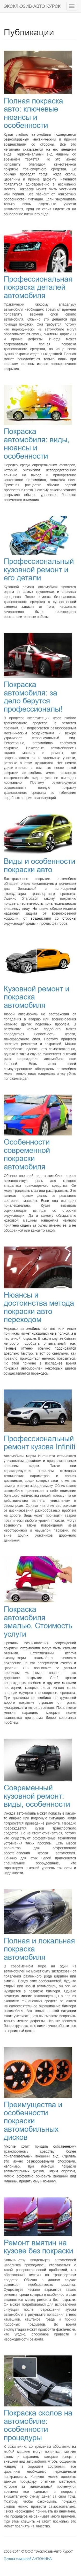 image of the mobile version of the site «Exclusive auto»